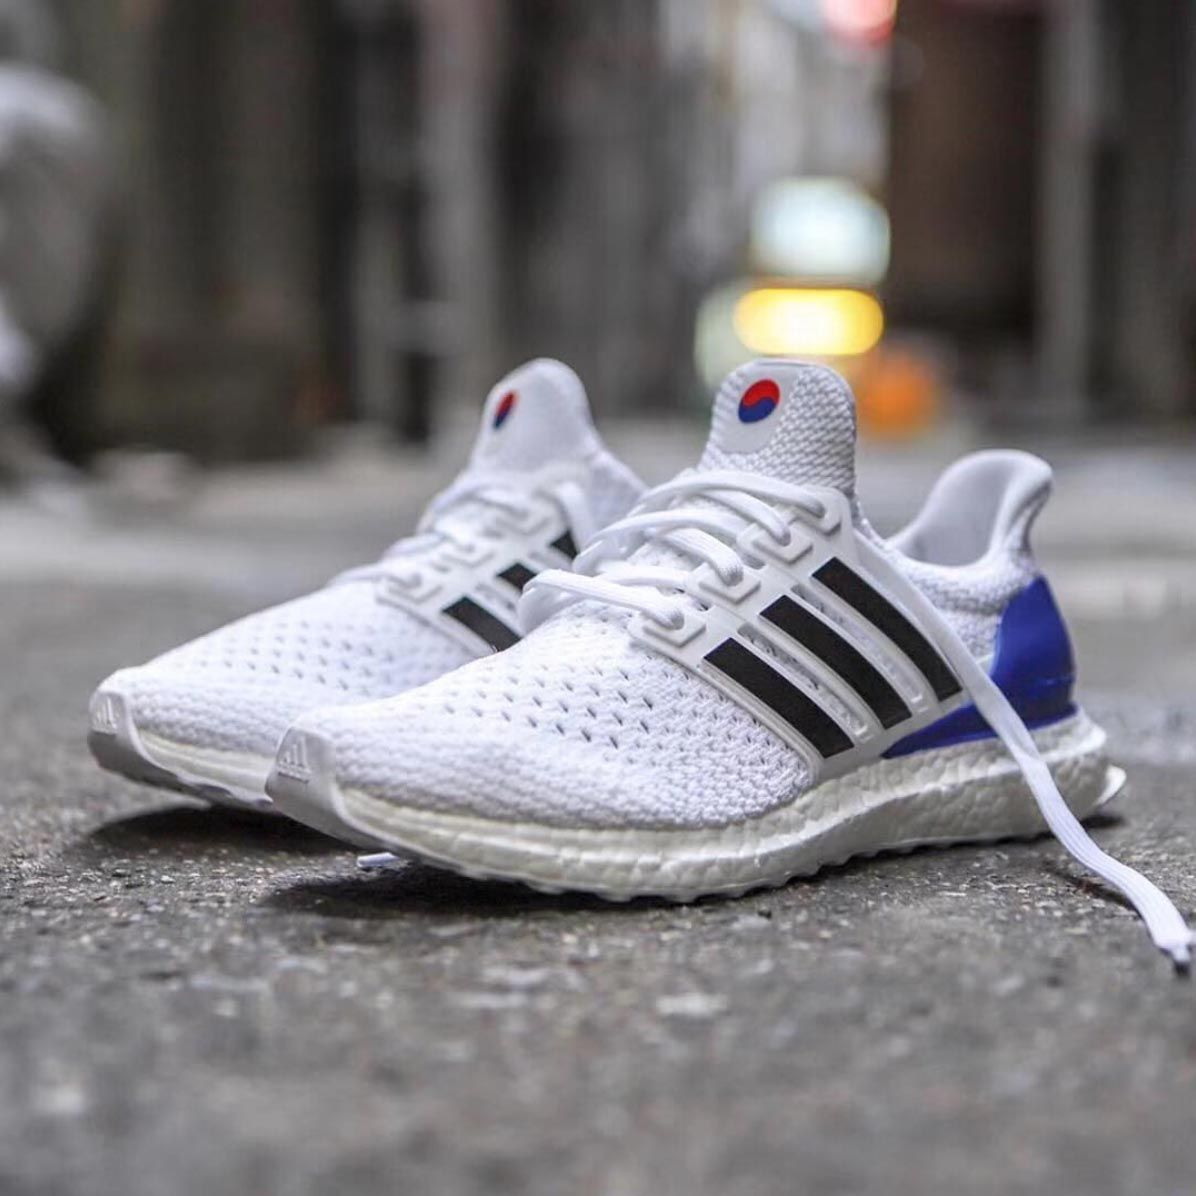 The adidas Ultra Boost 'Seoul' Is Limited To 1988 Pairs